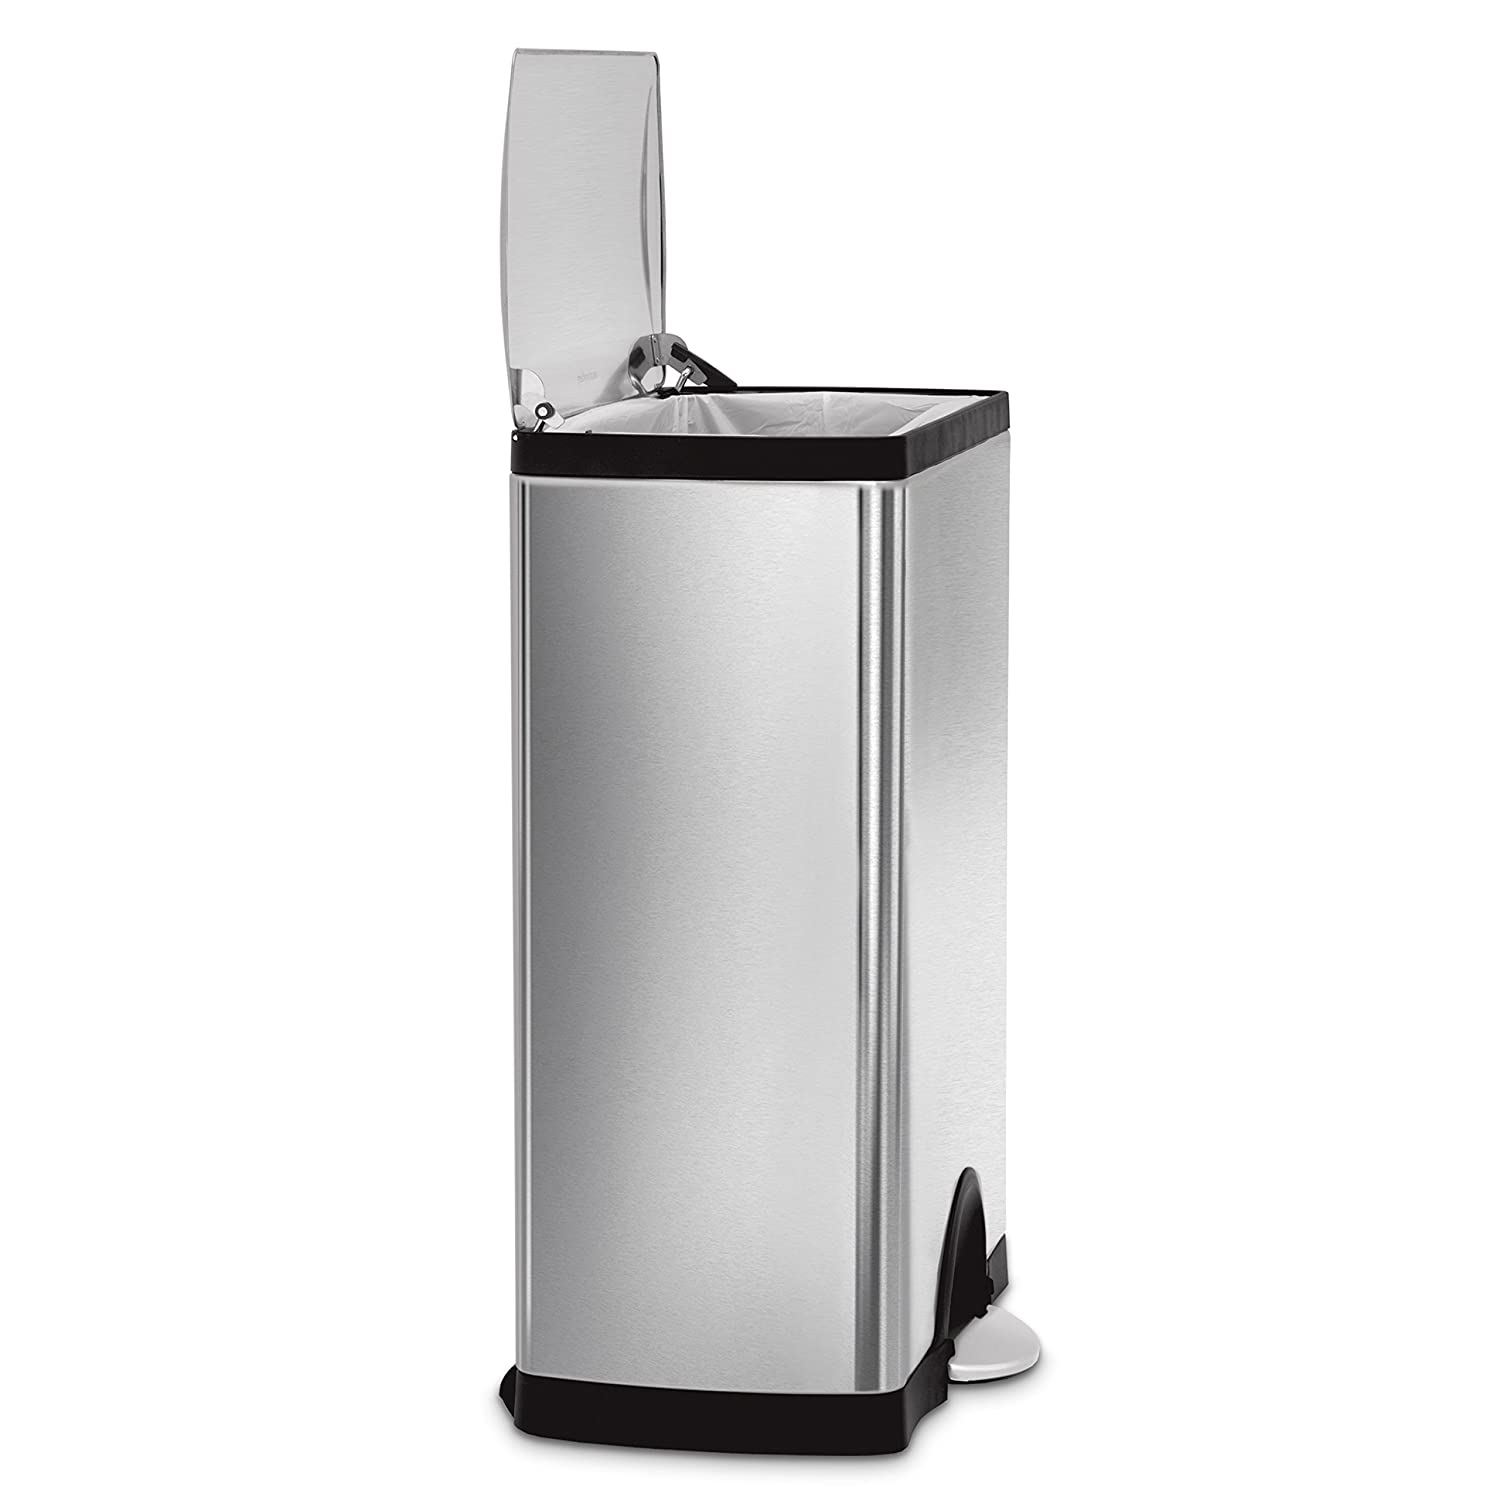 Amazon simplehuman Rectangular Step Trash Can Stainless Steel